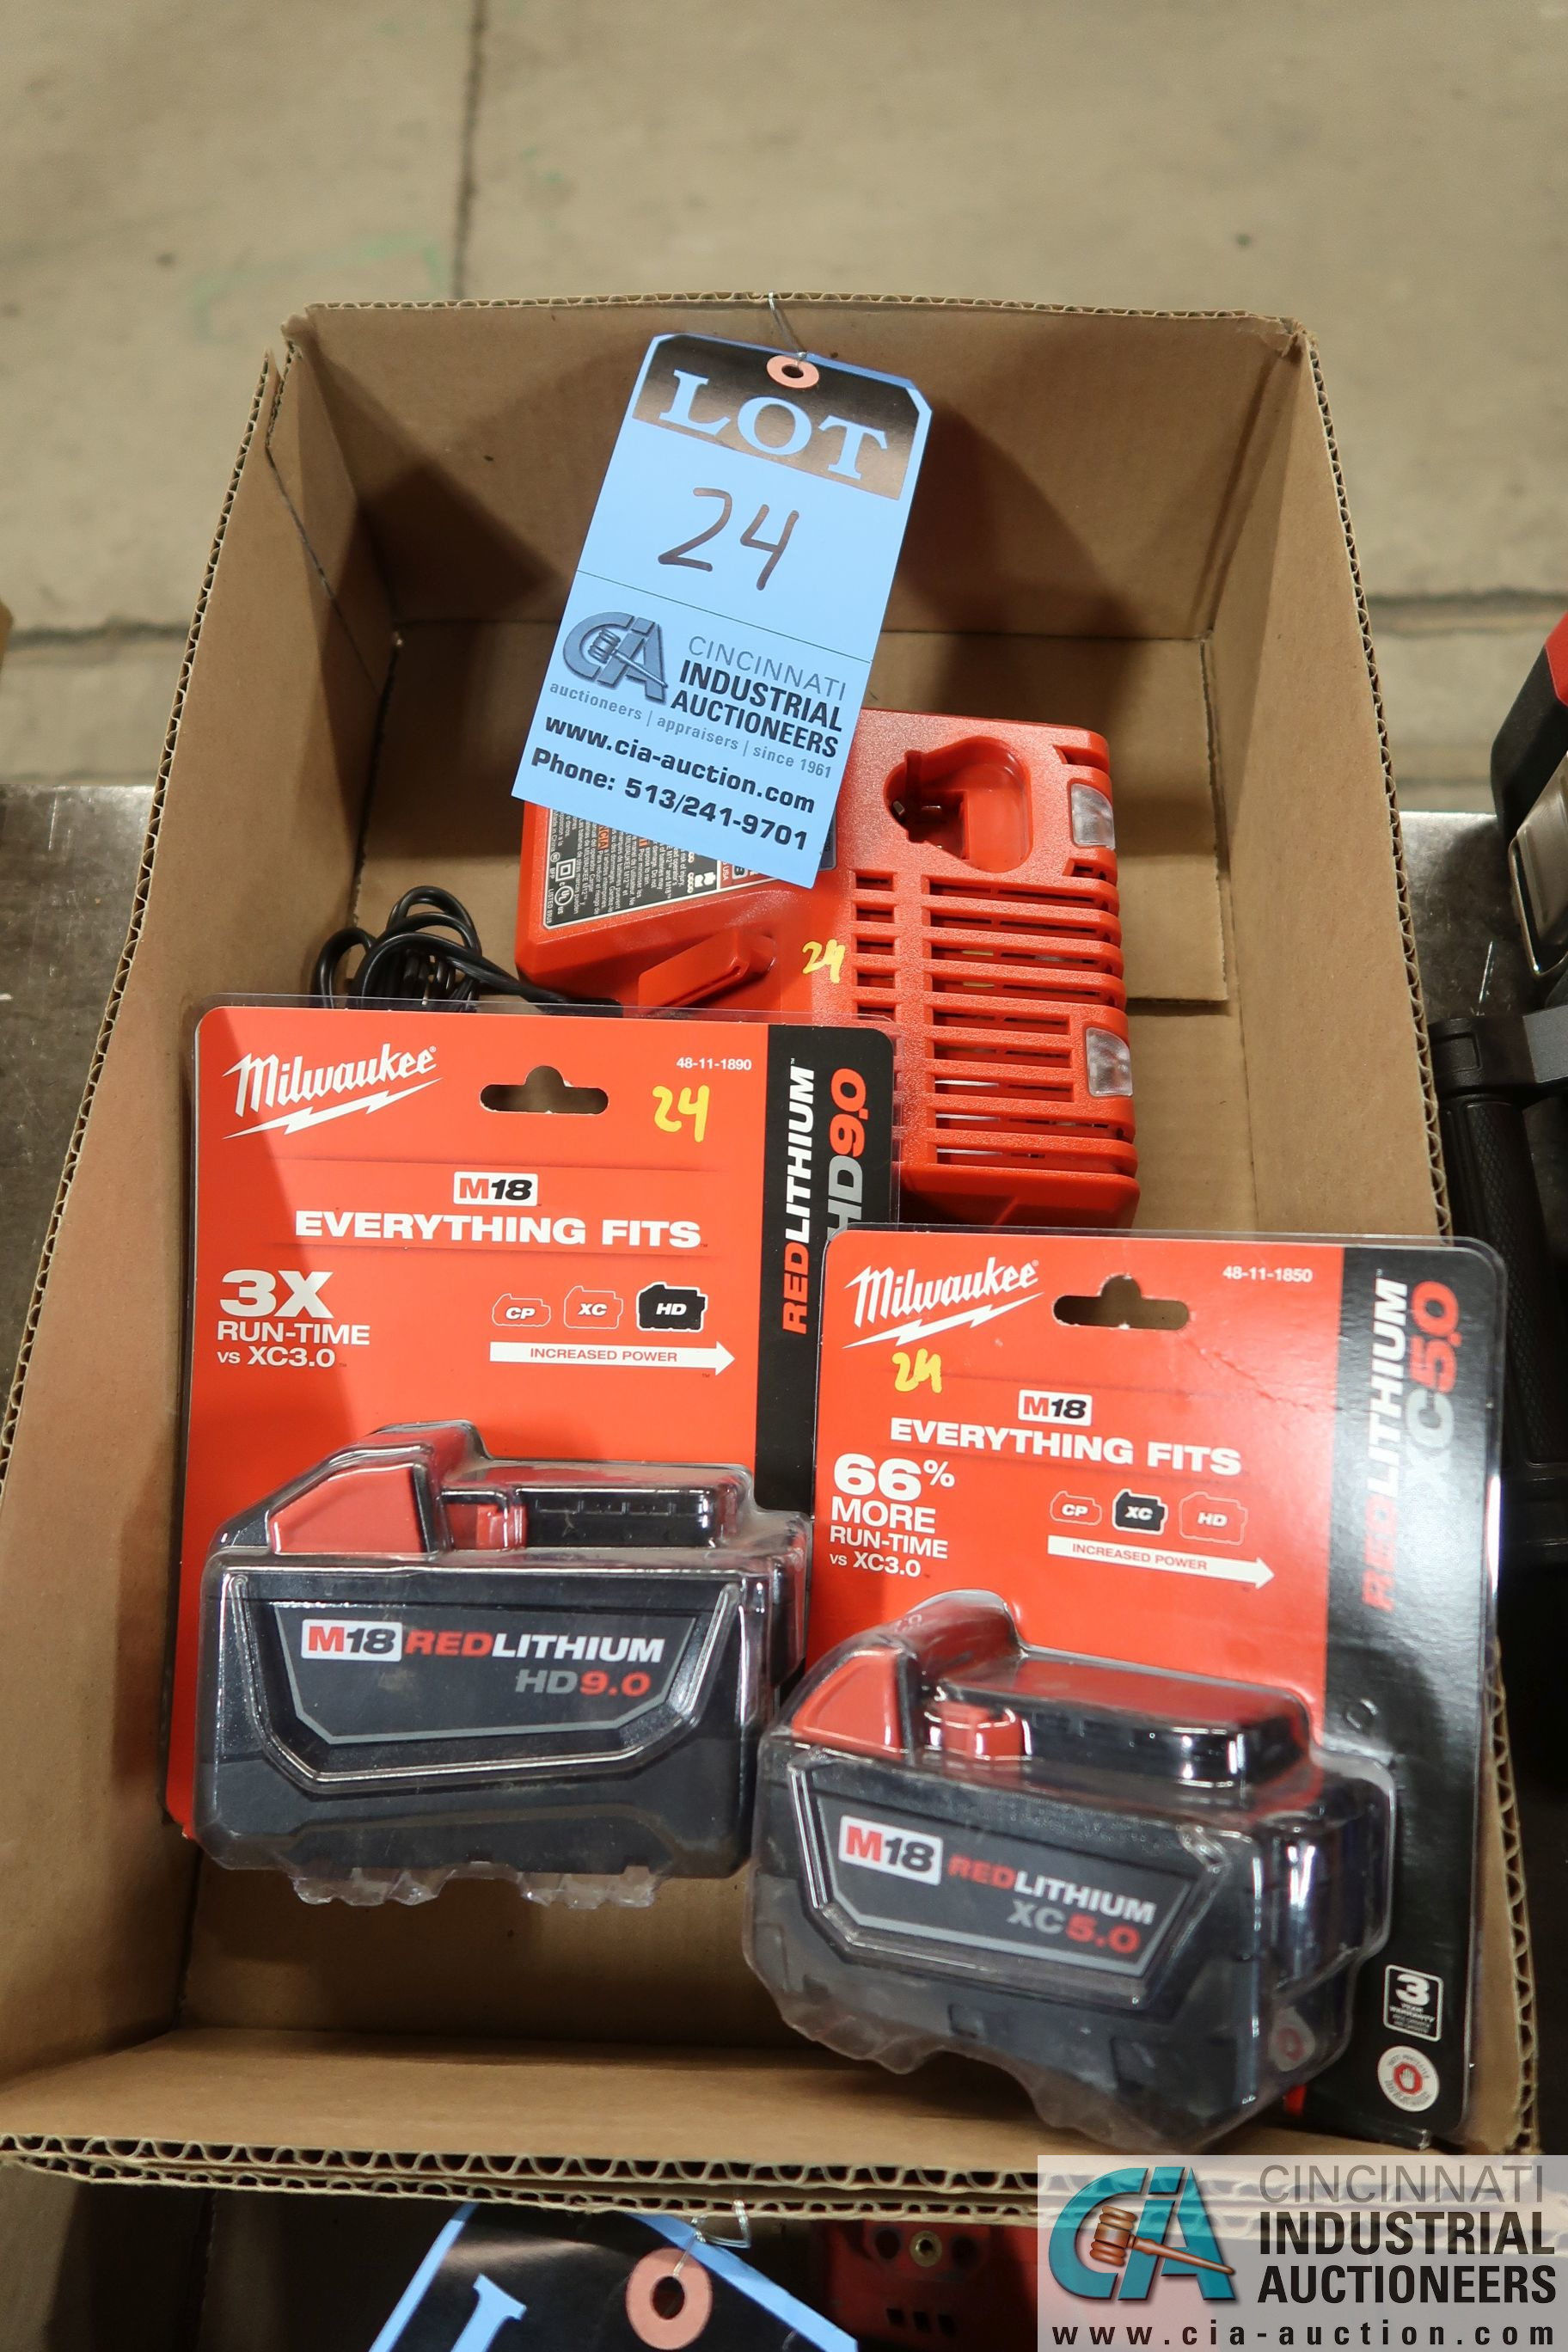 (LOT) NEW MILWAUKEE M18 RED LITHIUM HD9.0 & XC5.0 BATTERIES WITH CHARGER